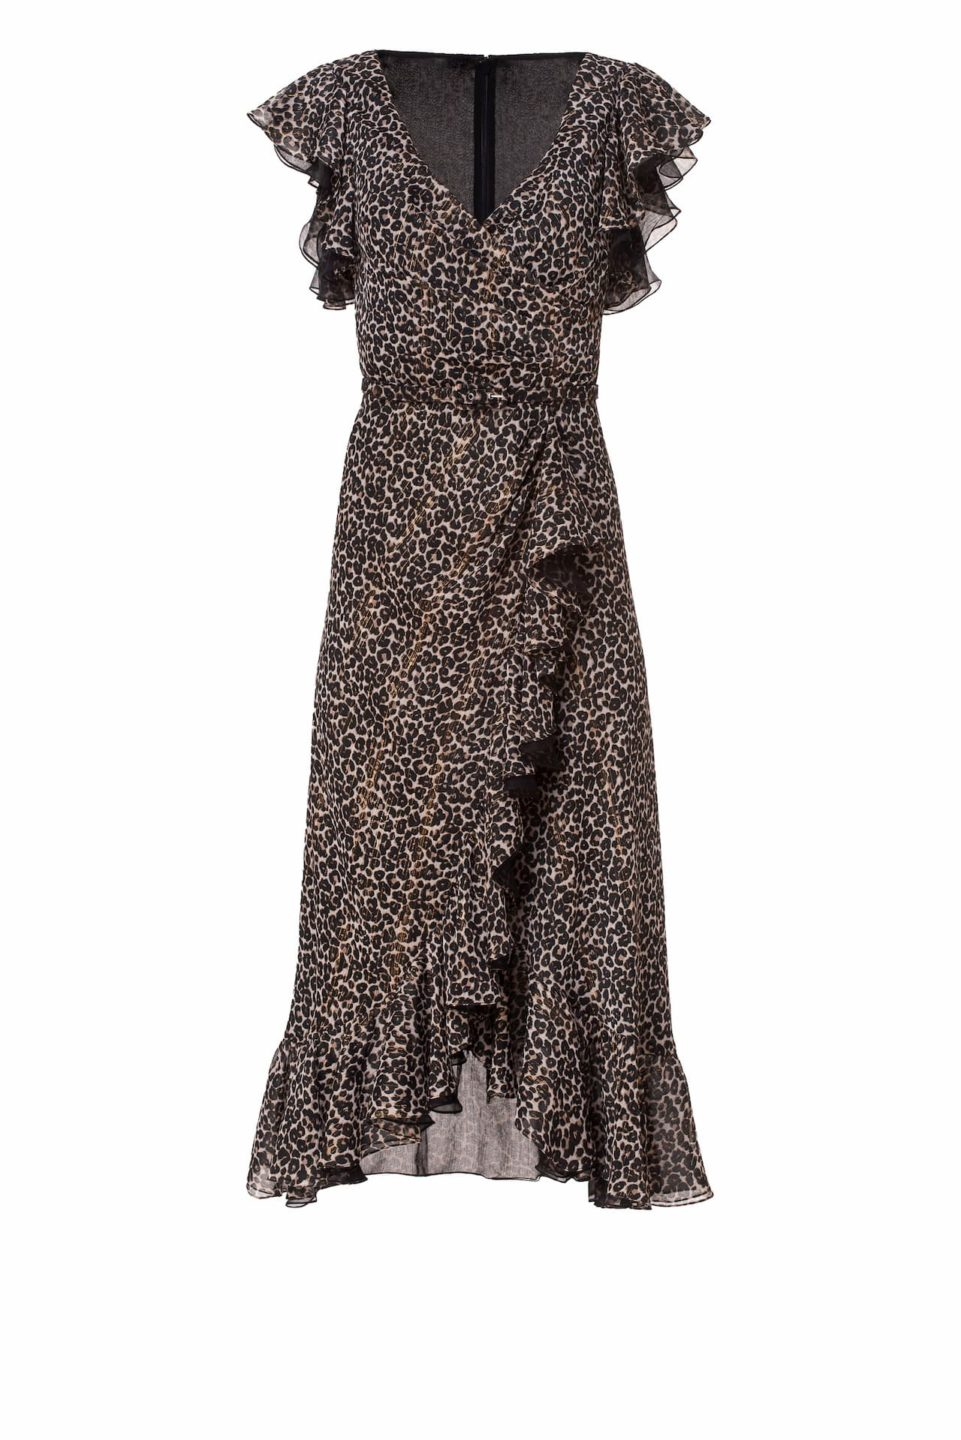 Jolecia PS2121 Black & Beige Leopard-Print Chiffon Flounce Wrap Dress with Gold Threading